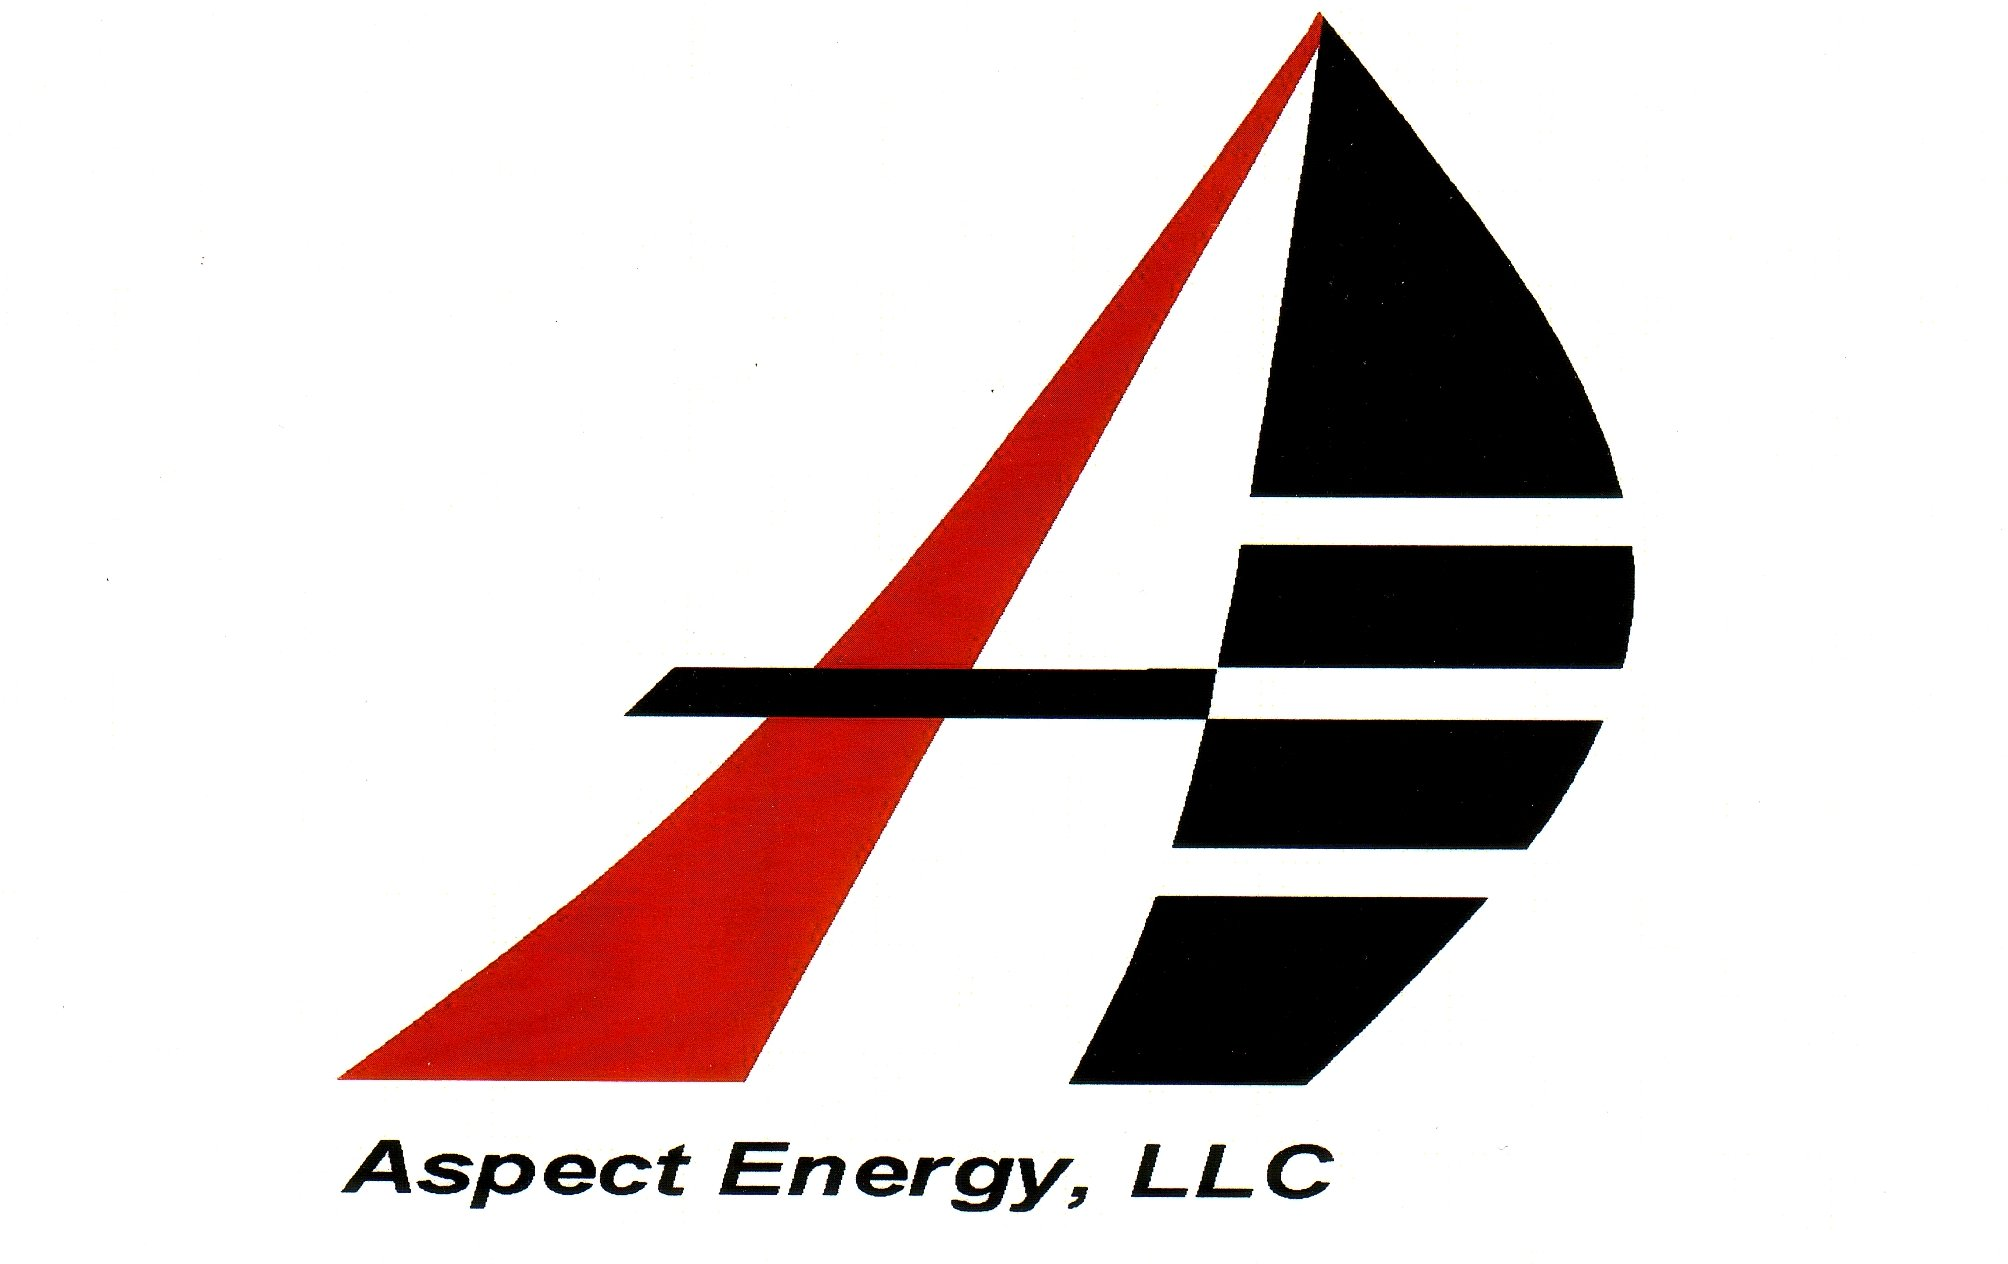 Aspect Energy, LLC